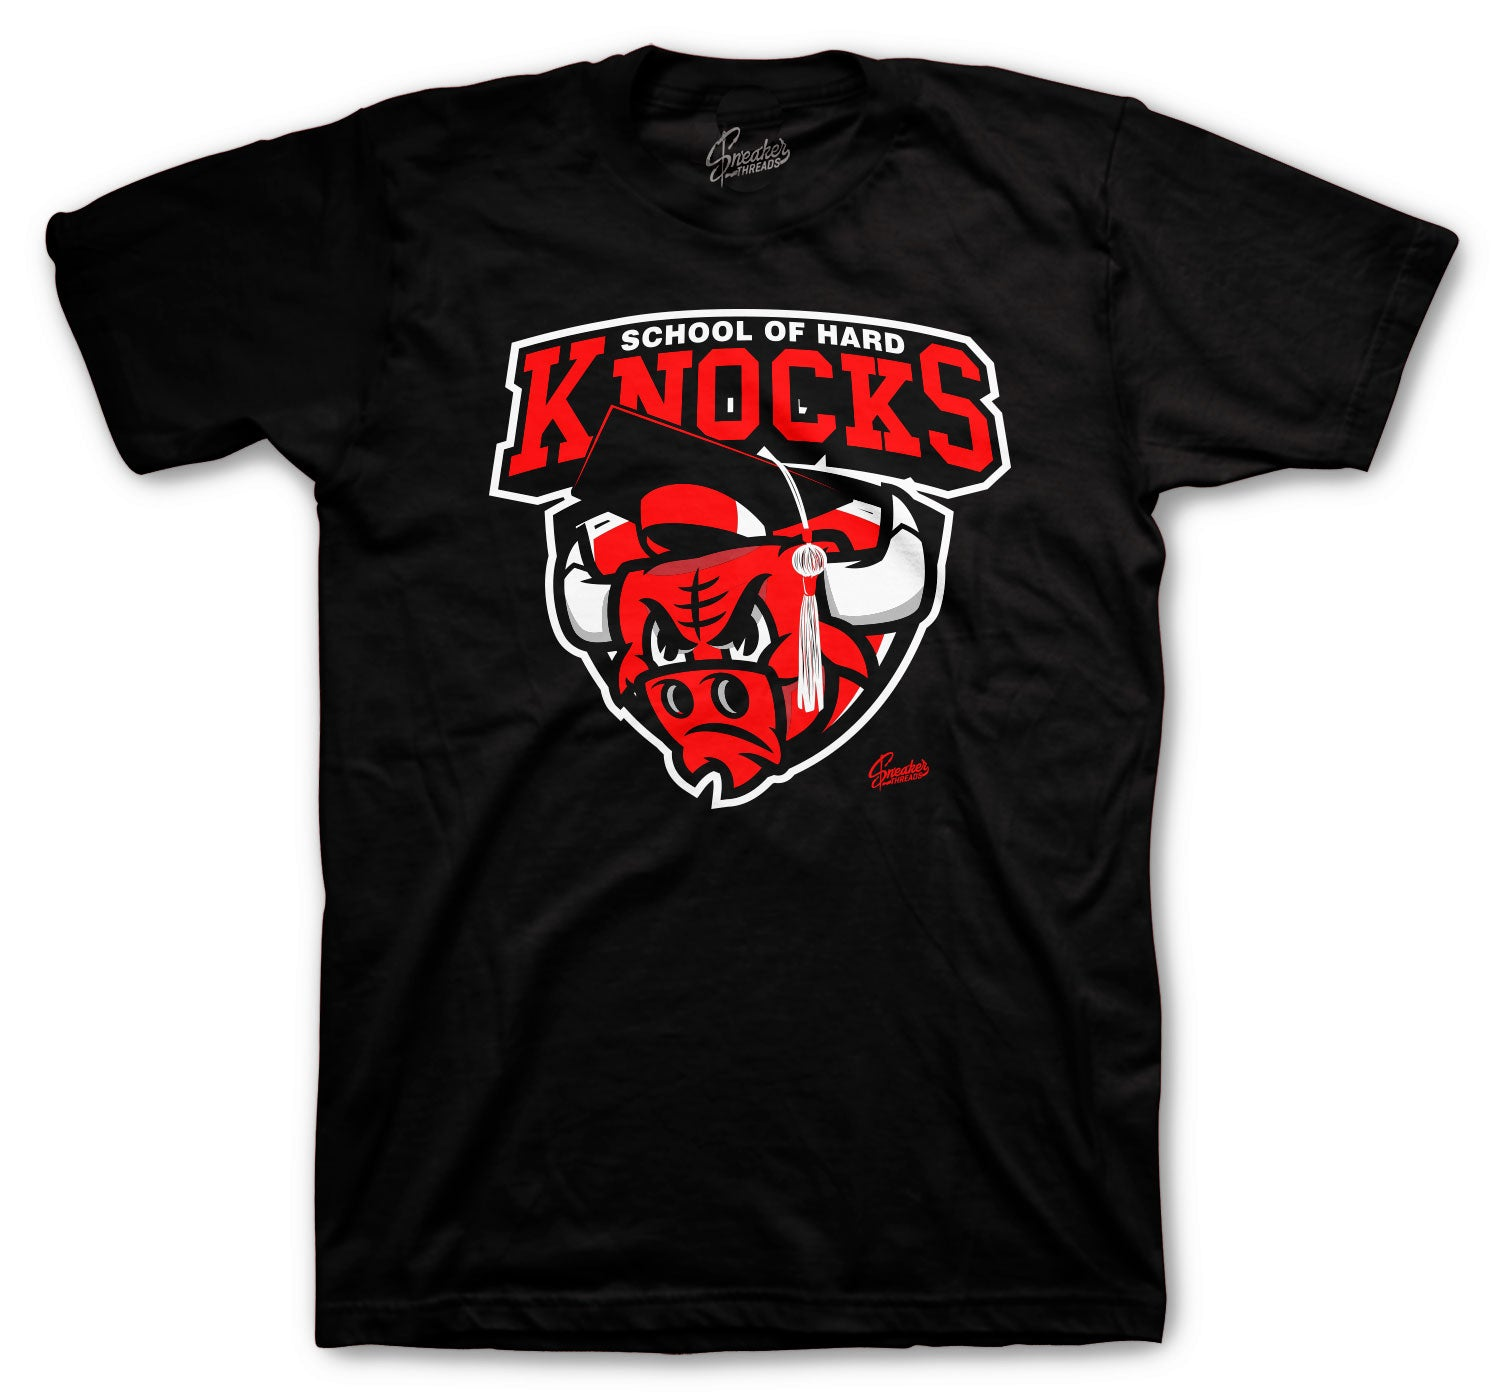 Jordan 1 AJKO Chicago Shirt - Hard Knocks - Black